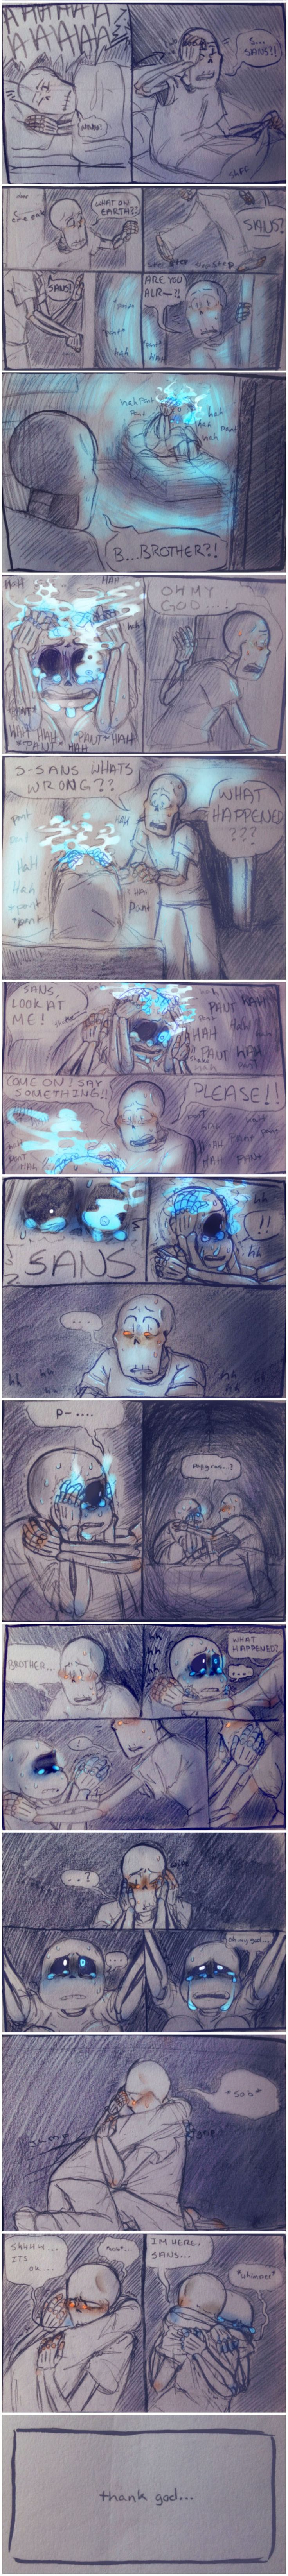 Sans and Papyrus - Night Terrors 2/2 #comic